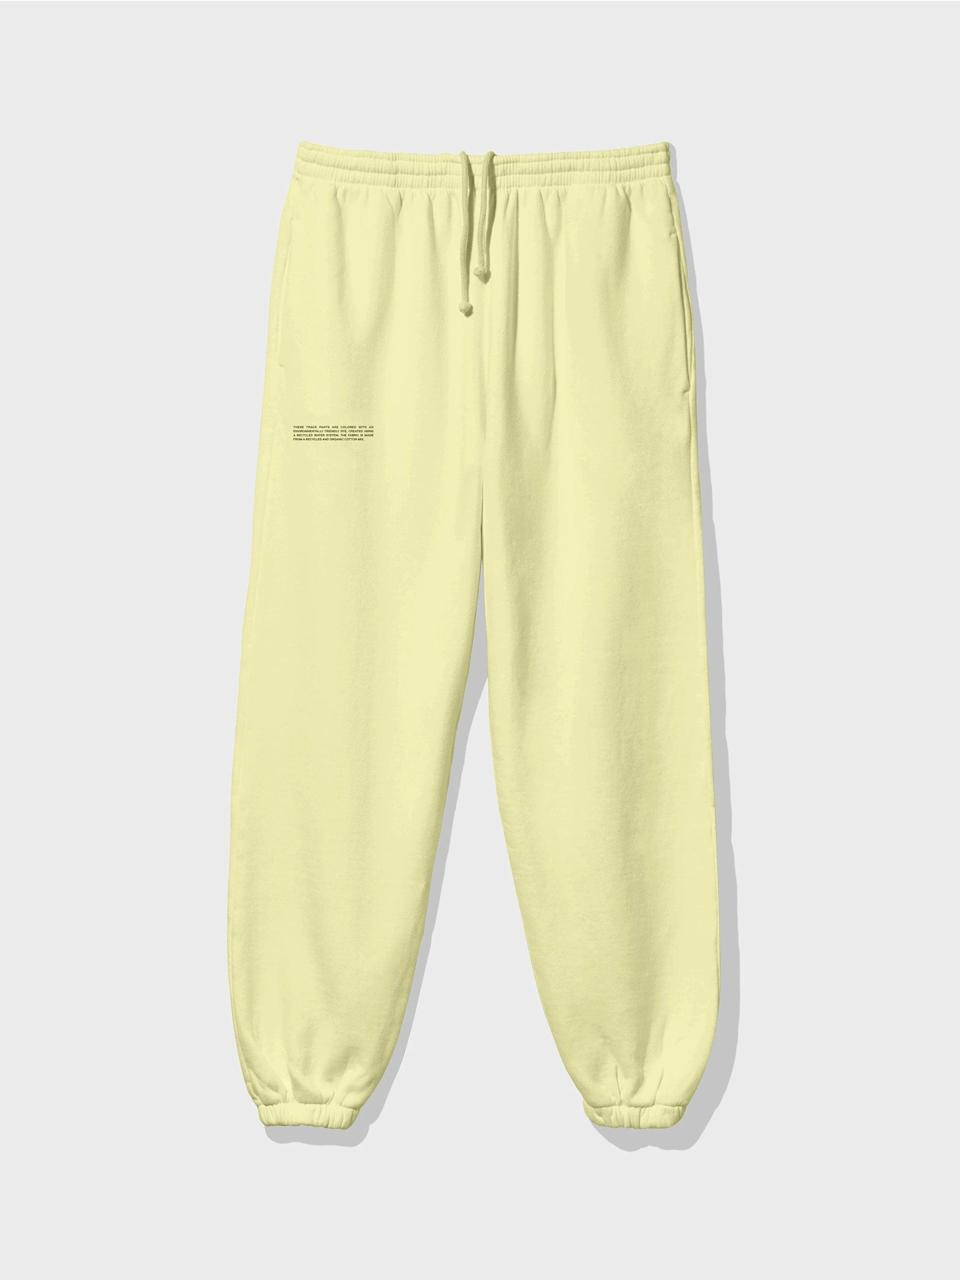 """<br><br><strong>Pangaia</strong> Lightweight Recycled Cotton Track Pants, $, available at <a href=""""https://thepangaia.com/products/lightweight-recycled-cotton-track-pants-hay-yellow"""" rel=""""nofollow noopener"""" target=""""_blank"""" data-ylk=""""slk:Pangaia"""" class=""""link rapid-noclick-resp"""">Pangaia</a>"""